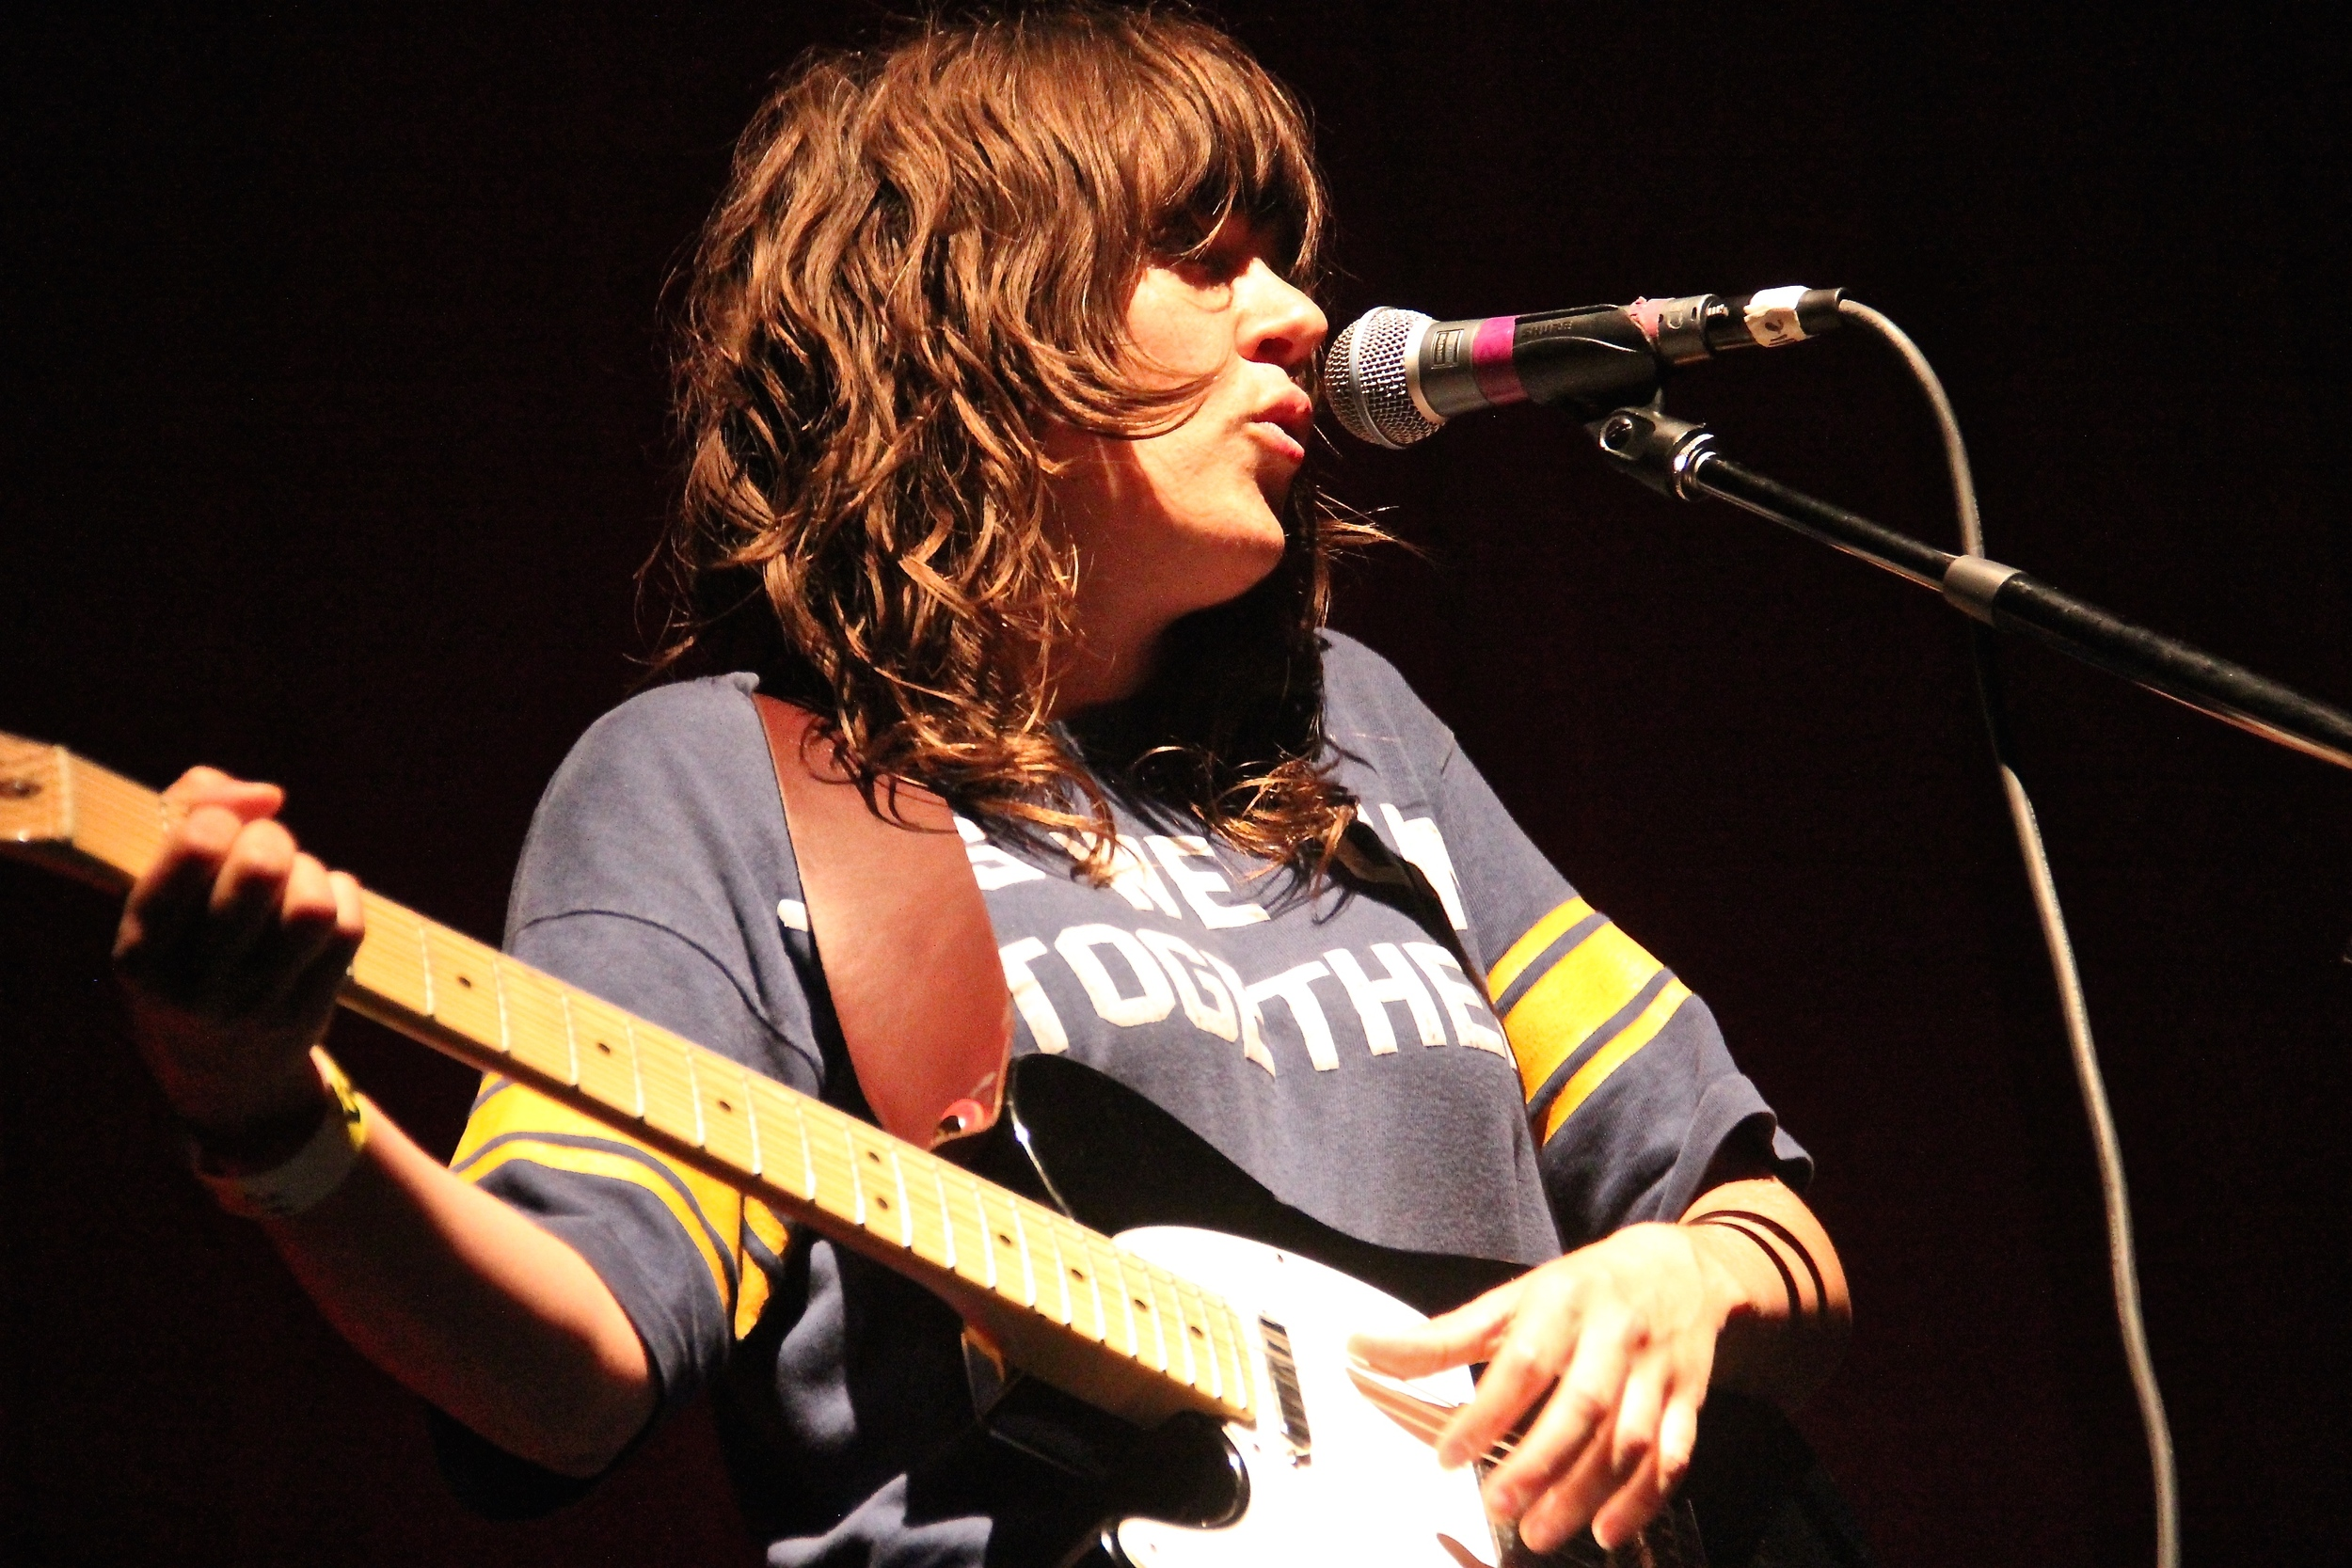 Courtney Barnett at the Uptown, 6/18/15